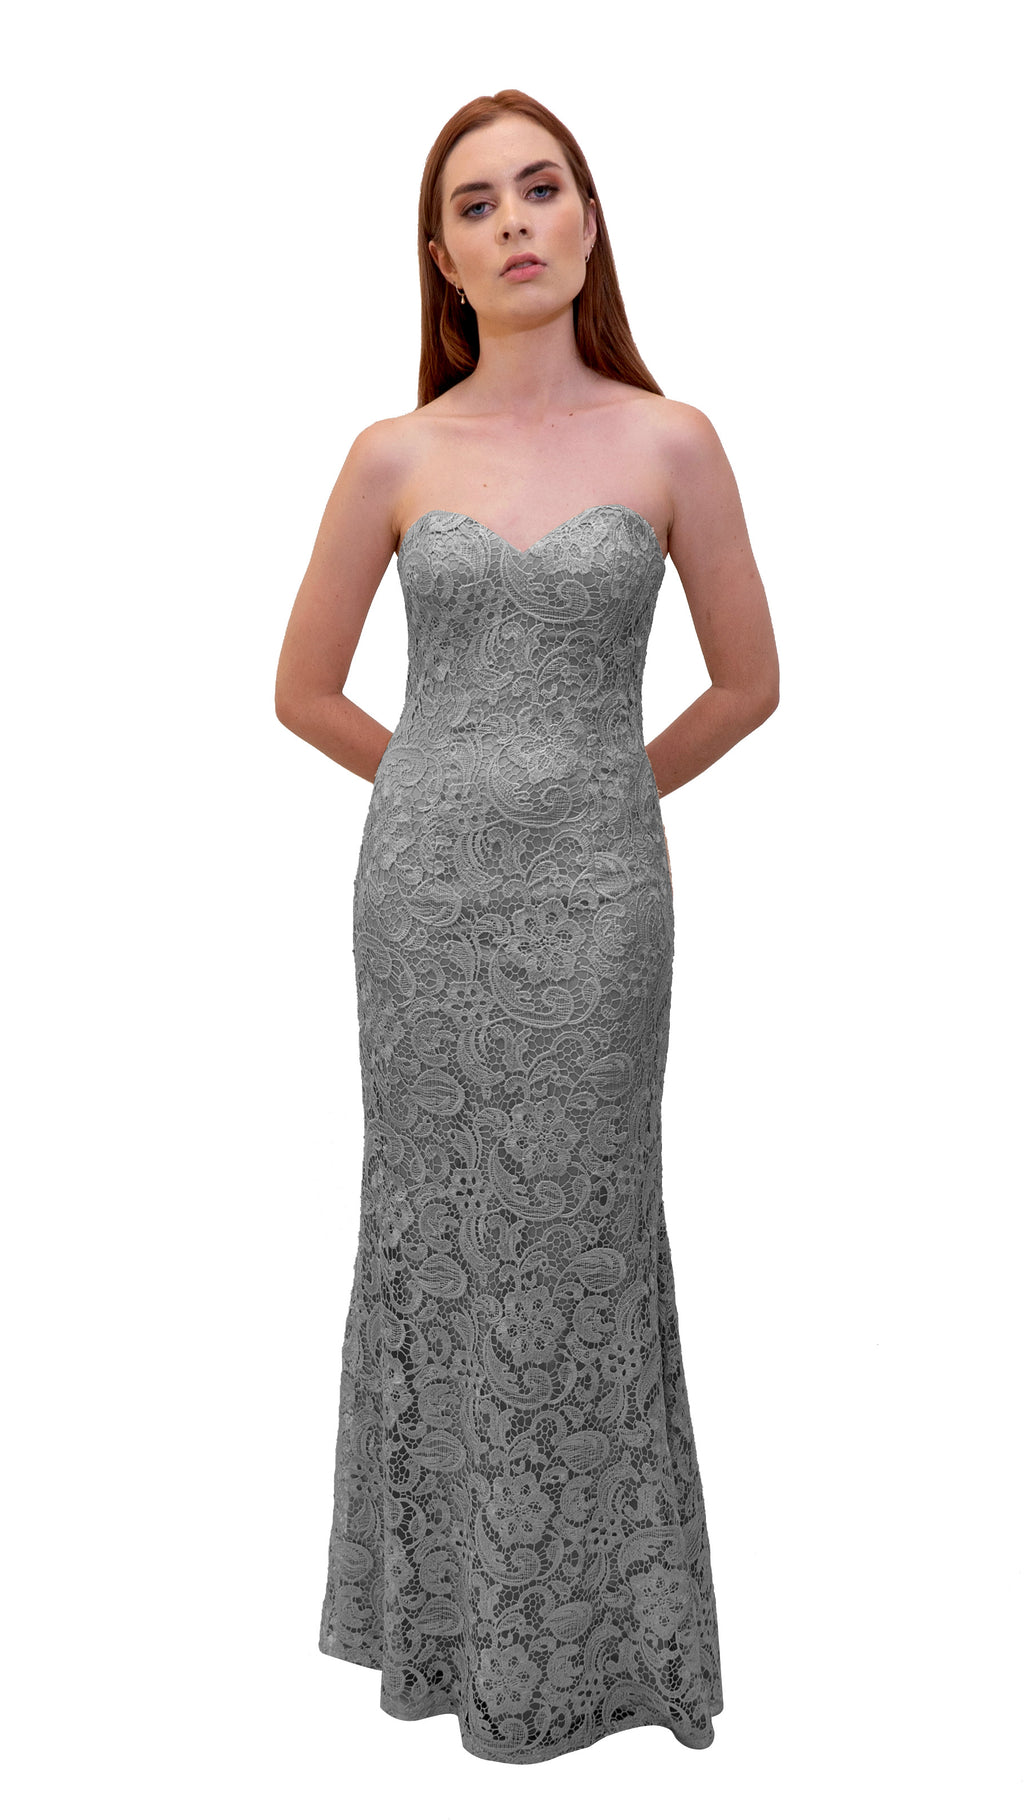 Bariano Strapless Lace Dress Silver